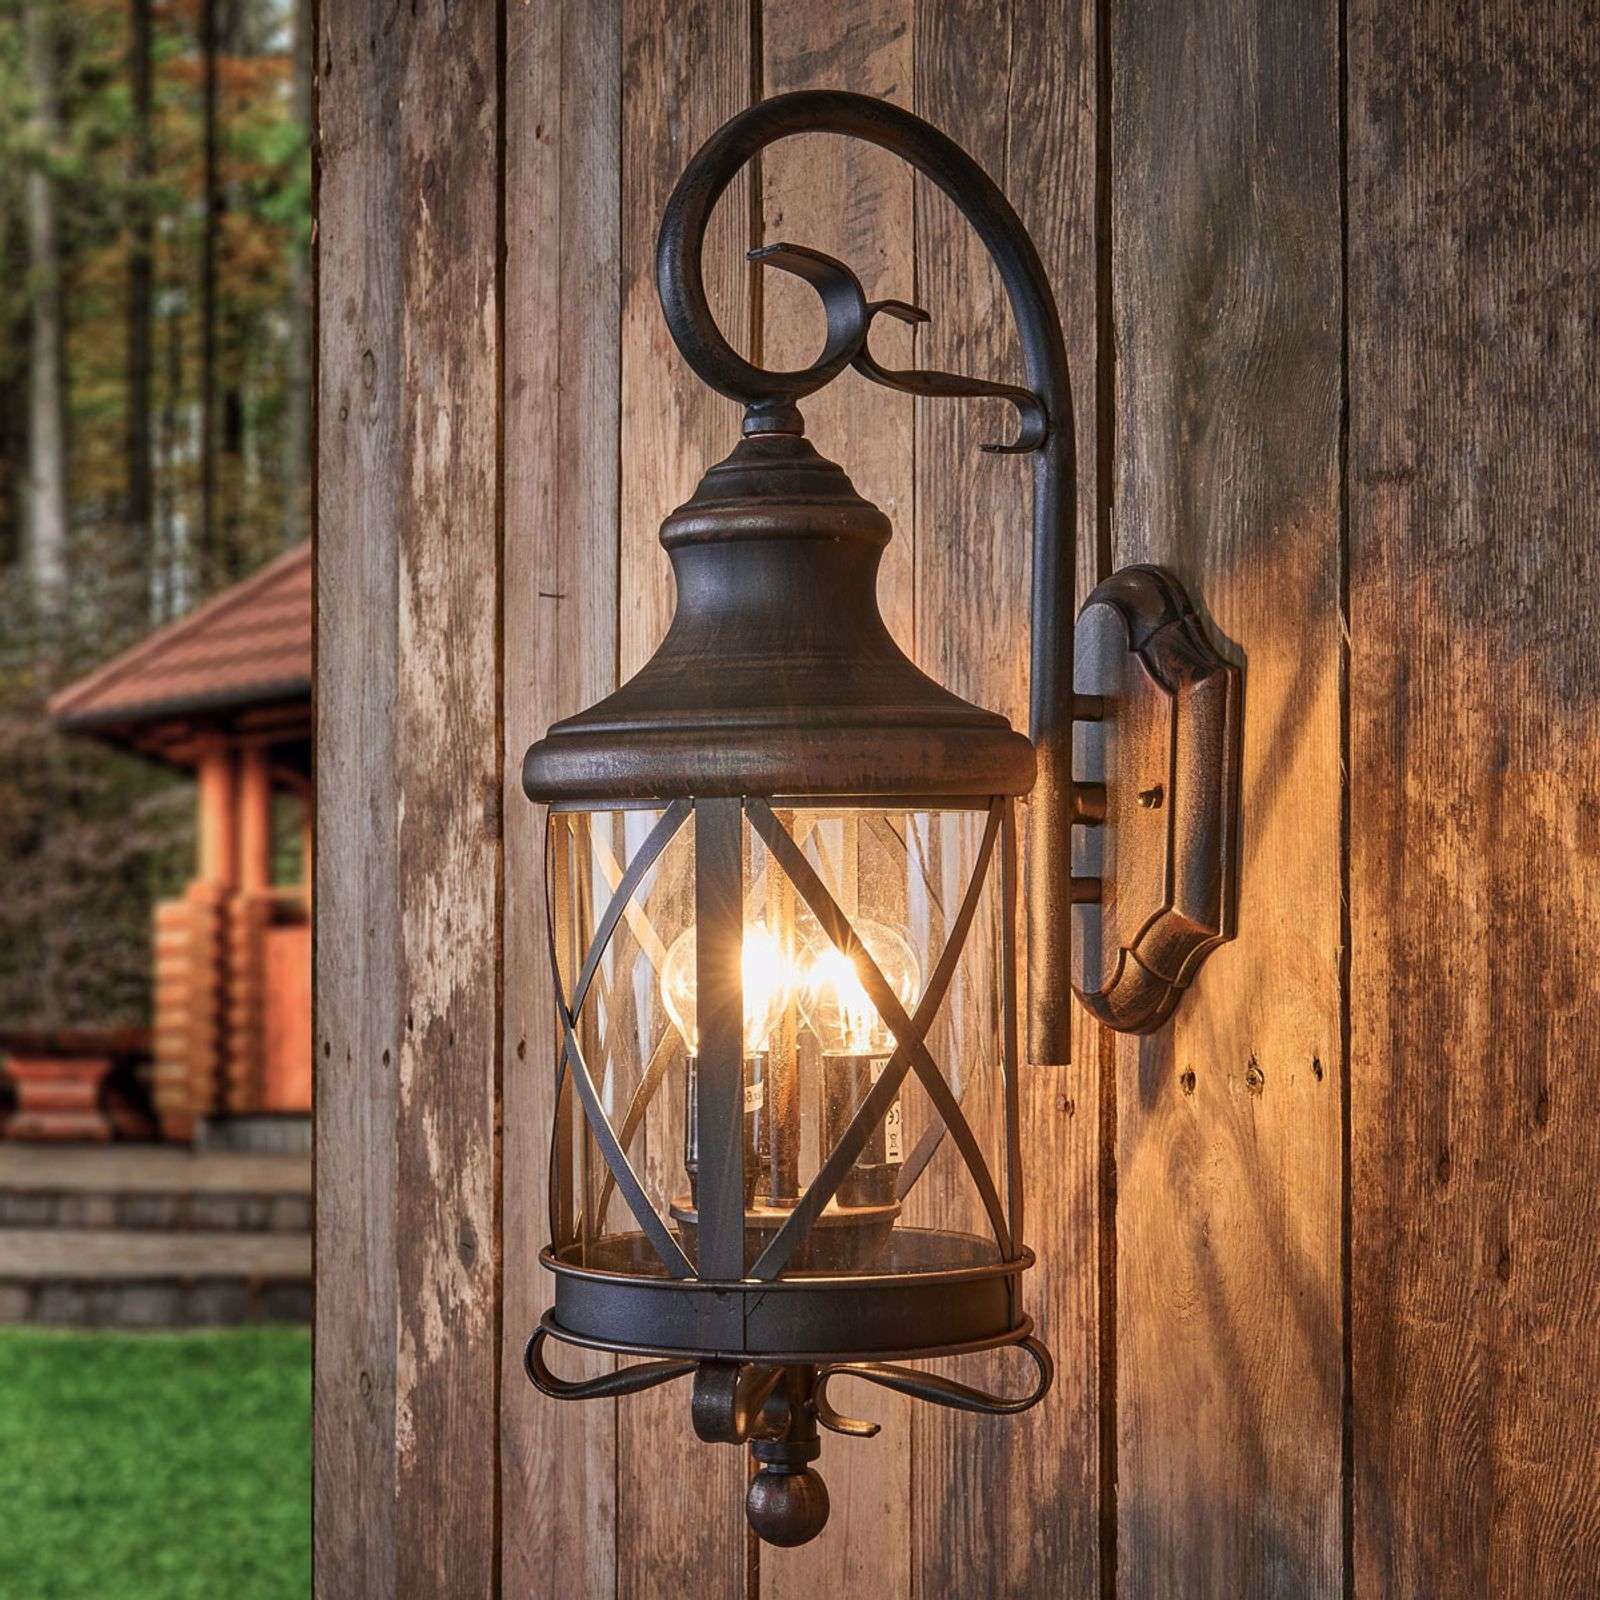 Buitenverlichting Landelijk In 2020 Wall Lights Rustic Houses Exterior Sconces